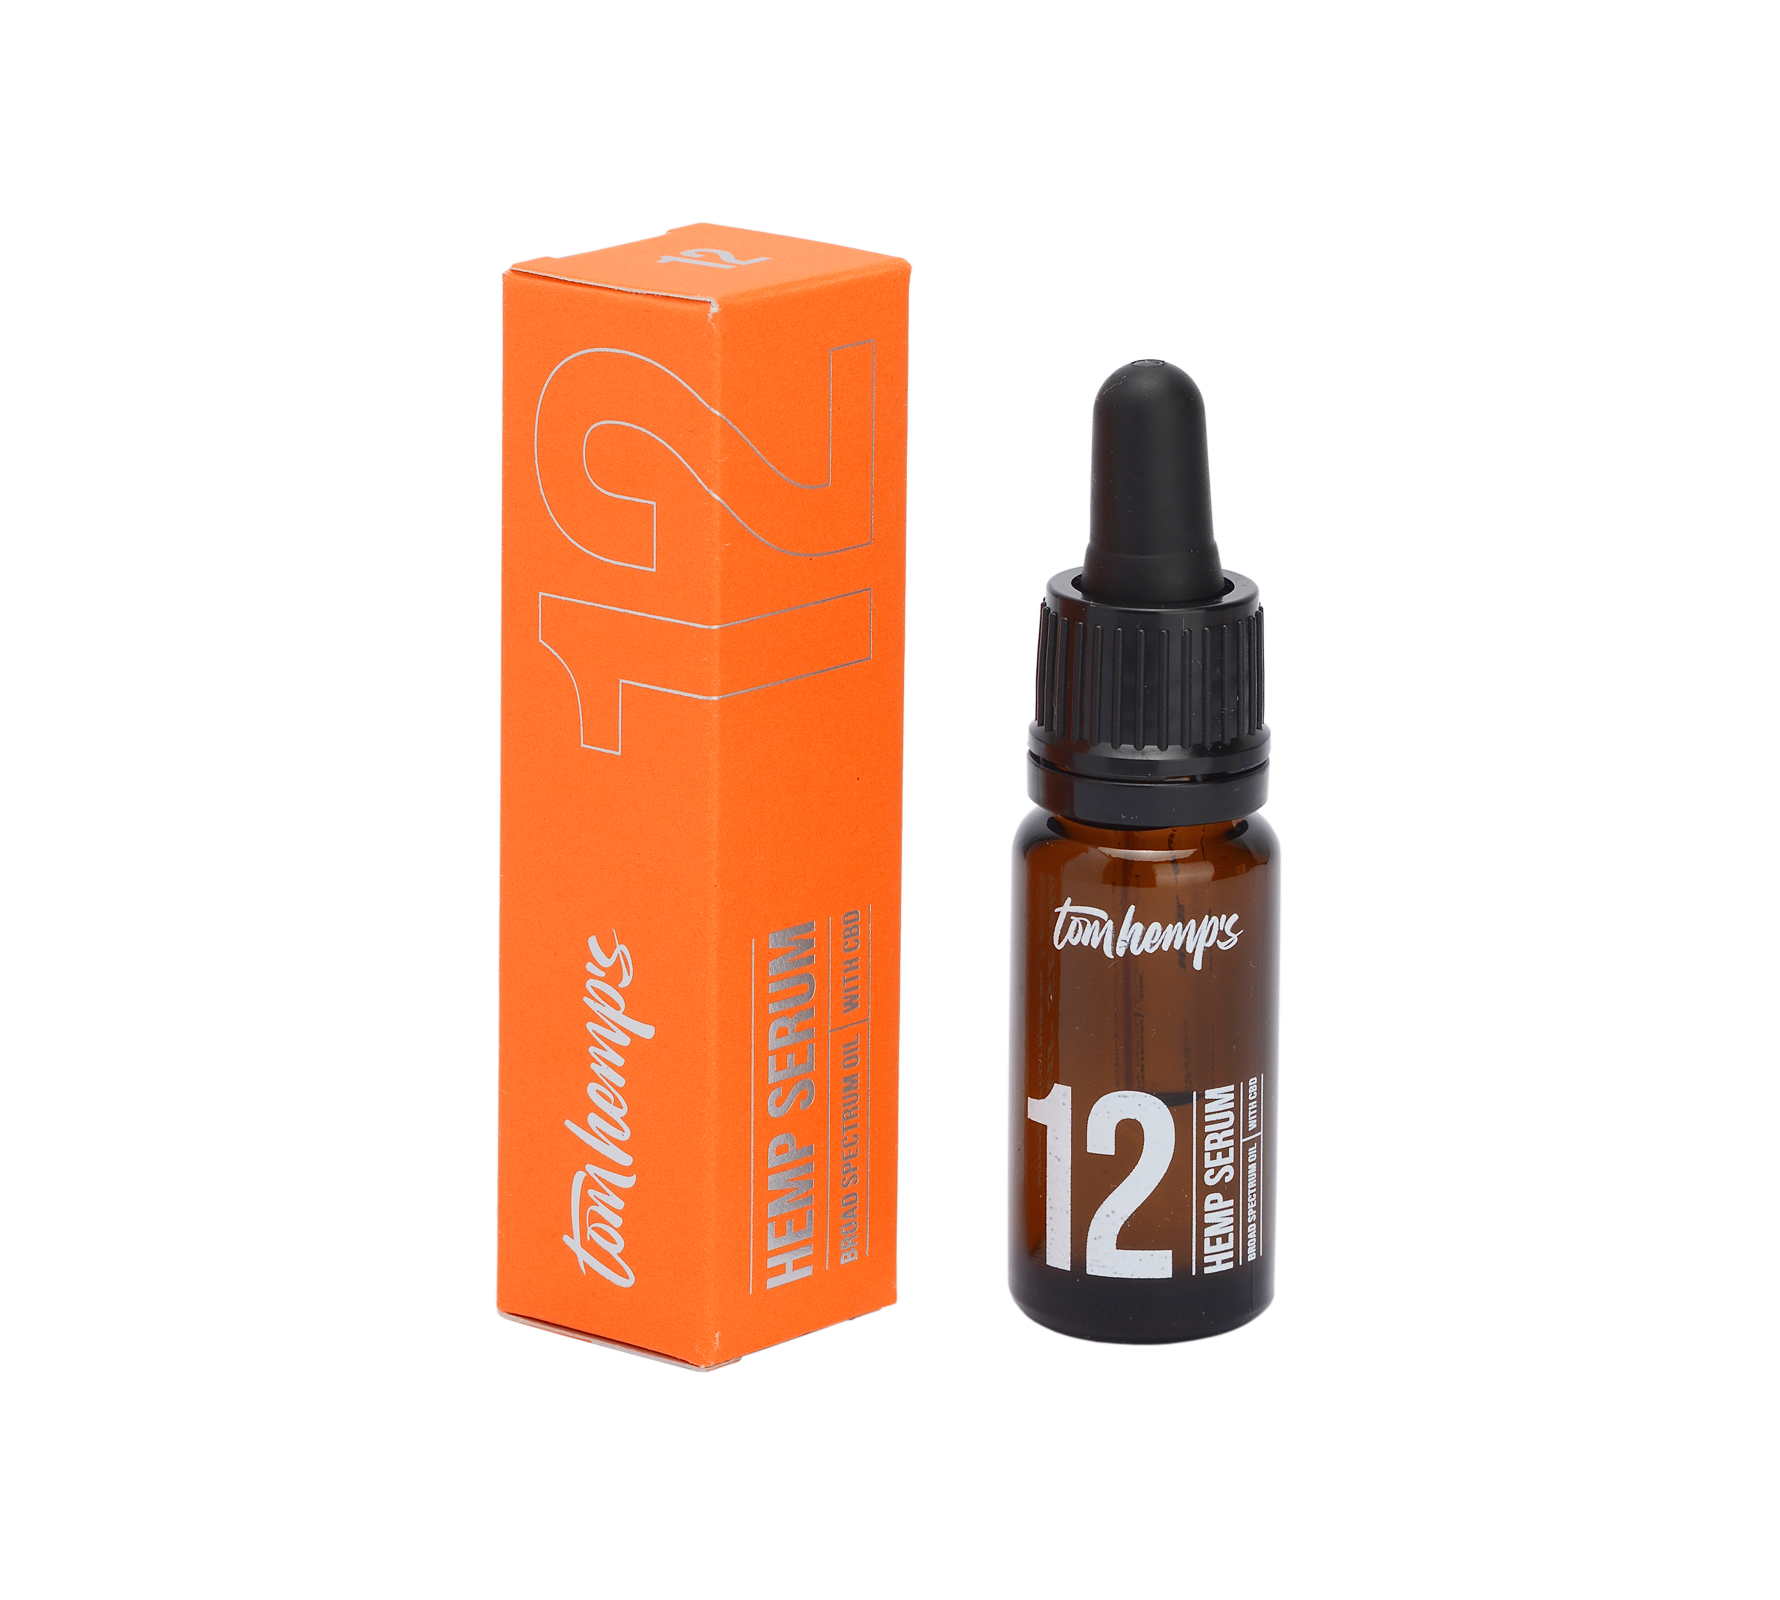 Broad Spectrum CBD Oil 12